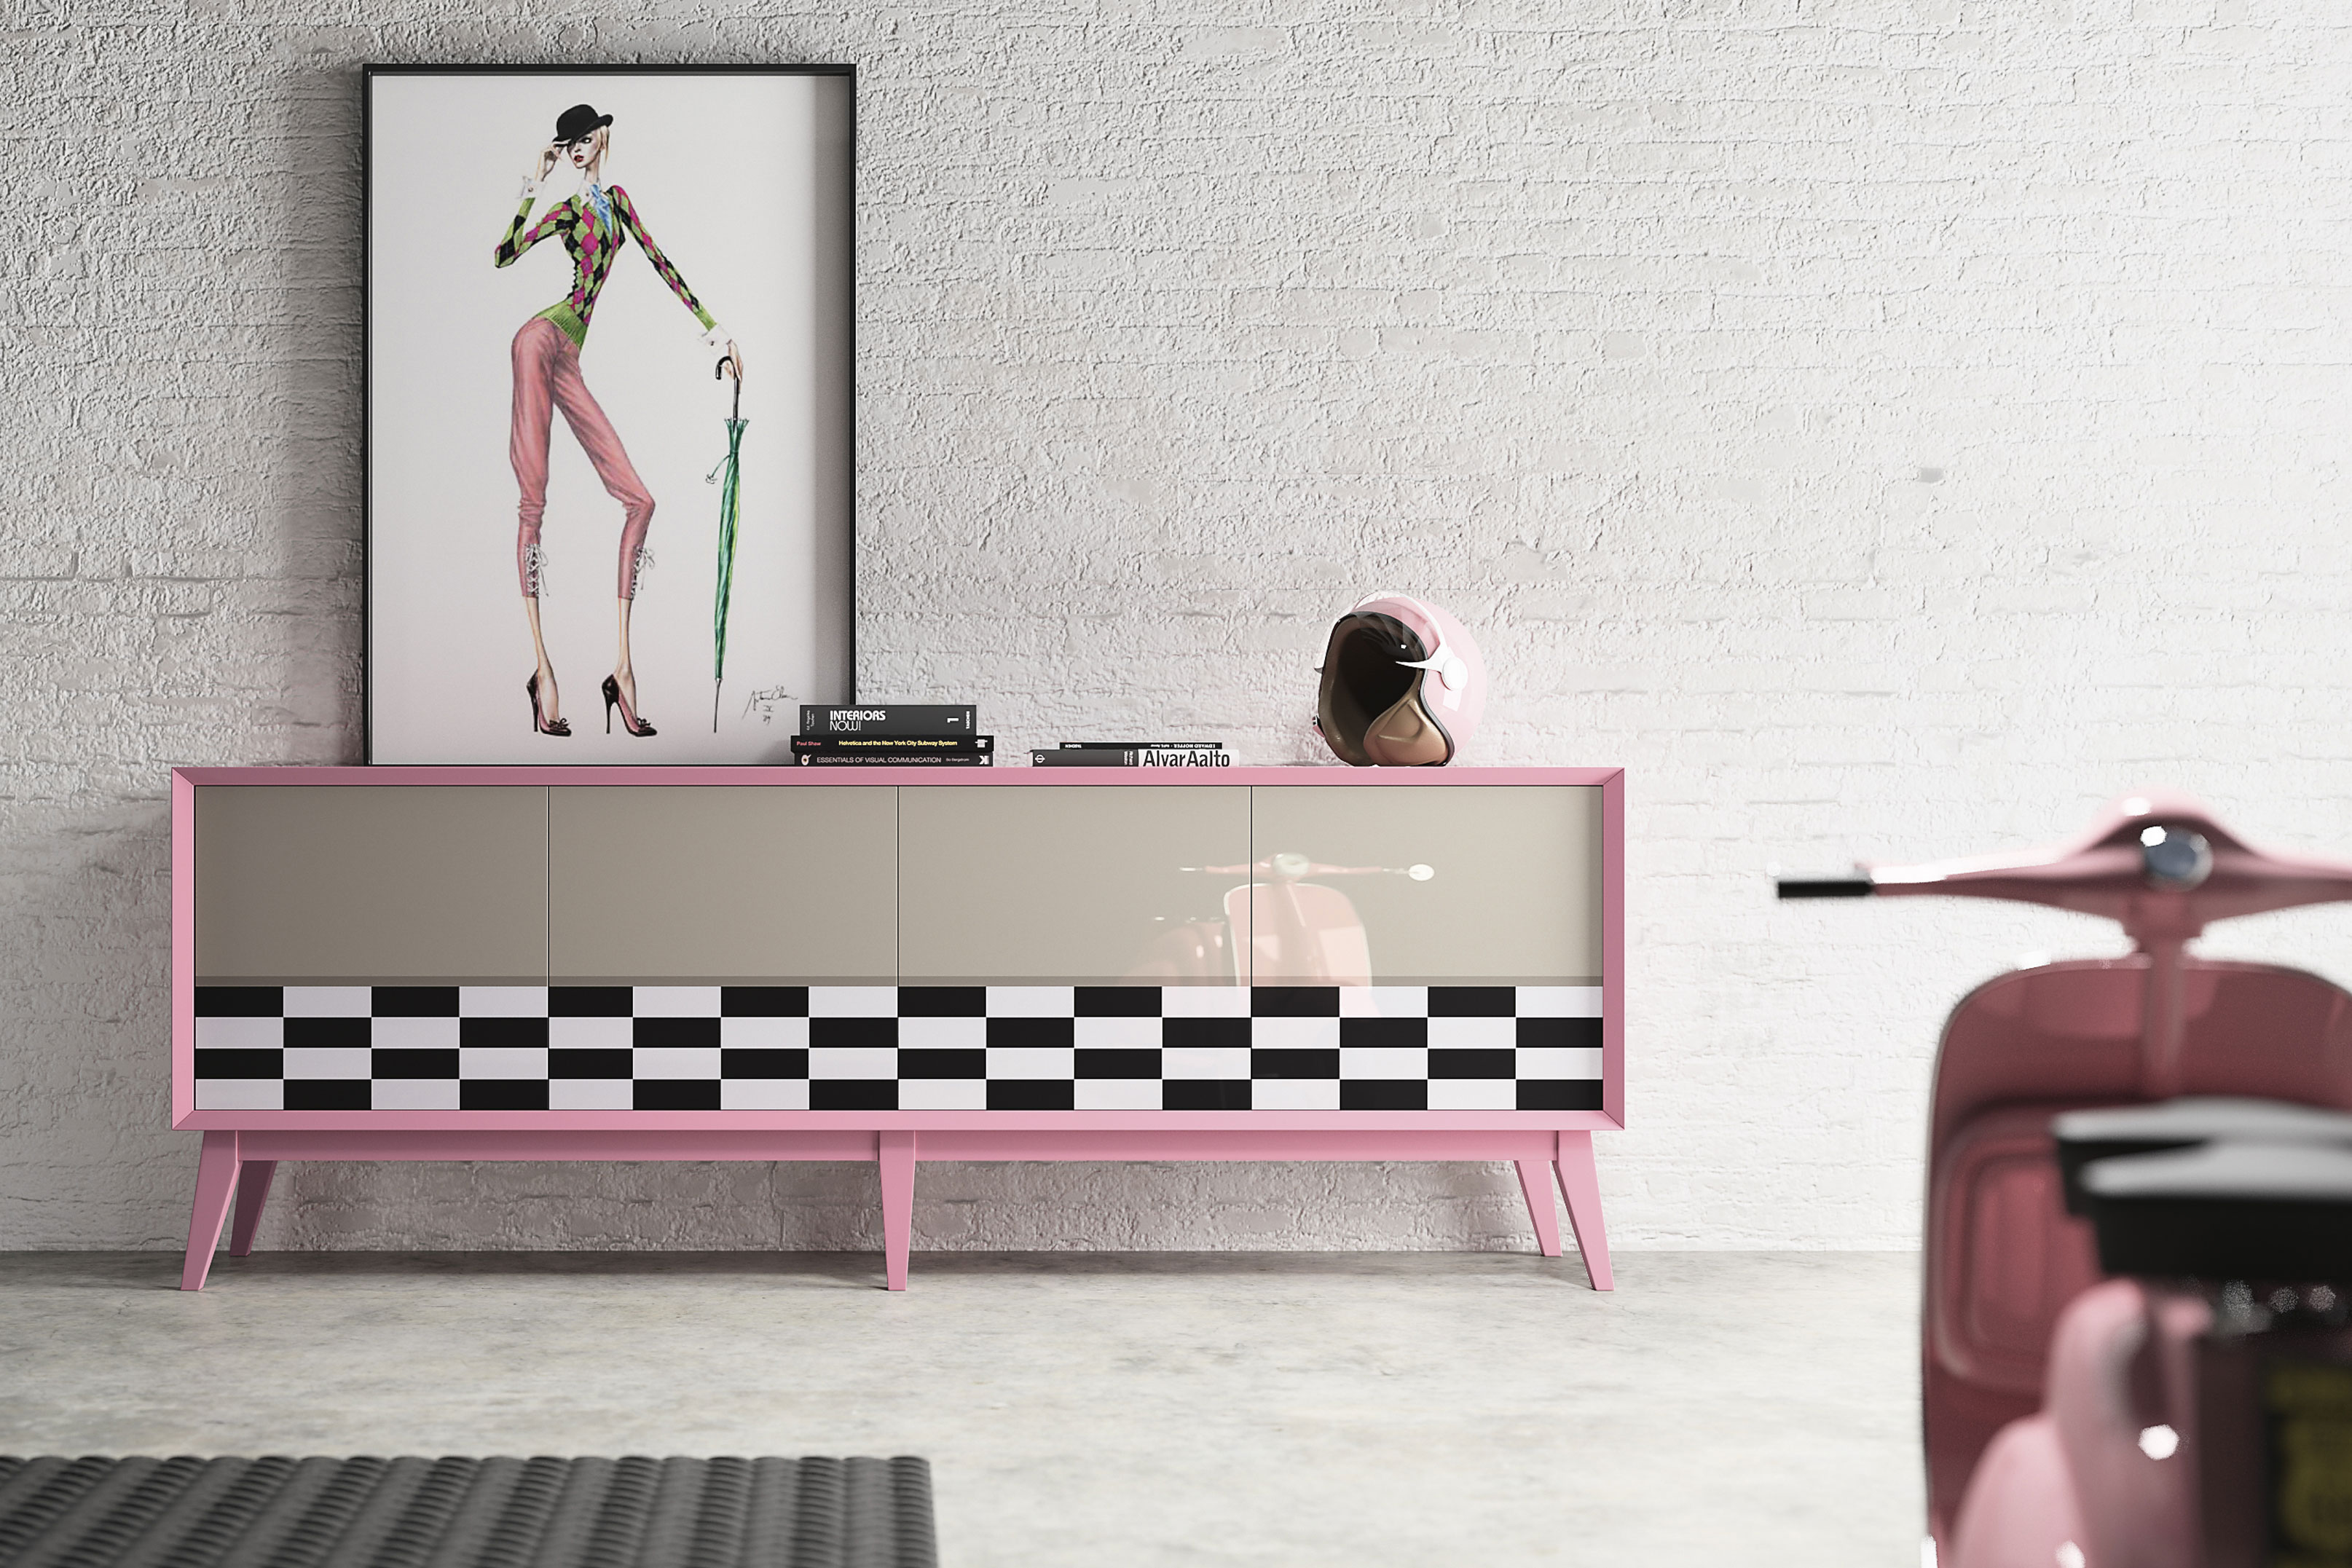 POP sideboard by La Ebanistería. Photo: Courtesy of La Ebanistería.